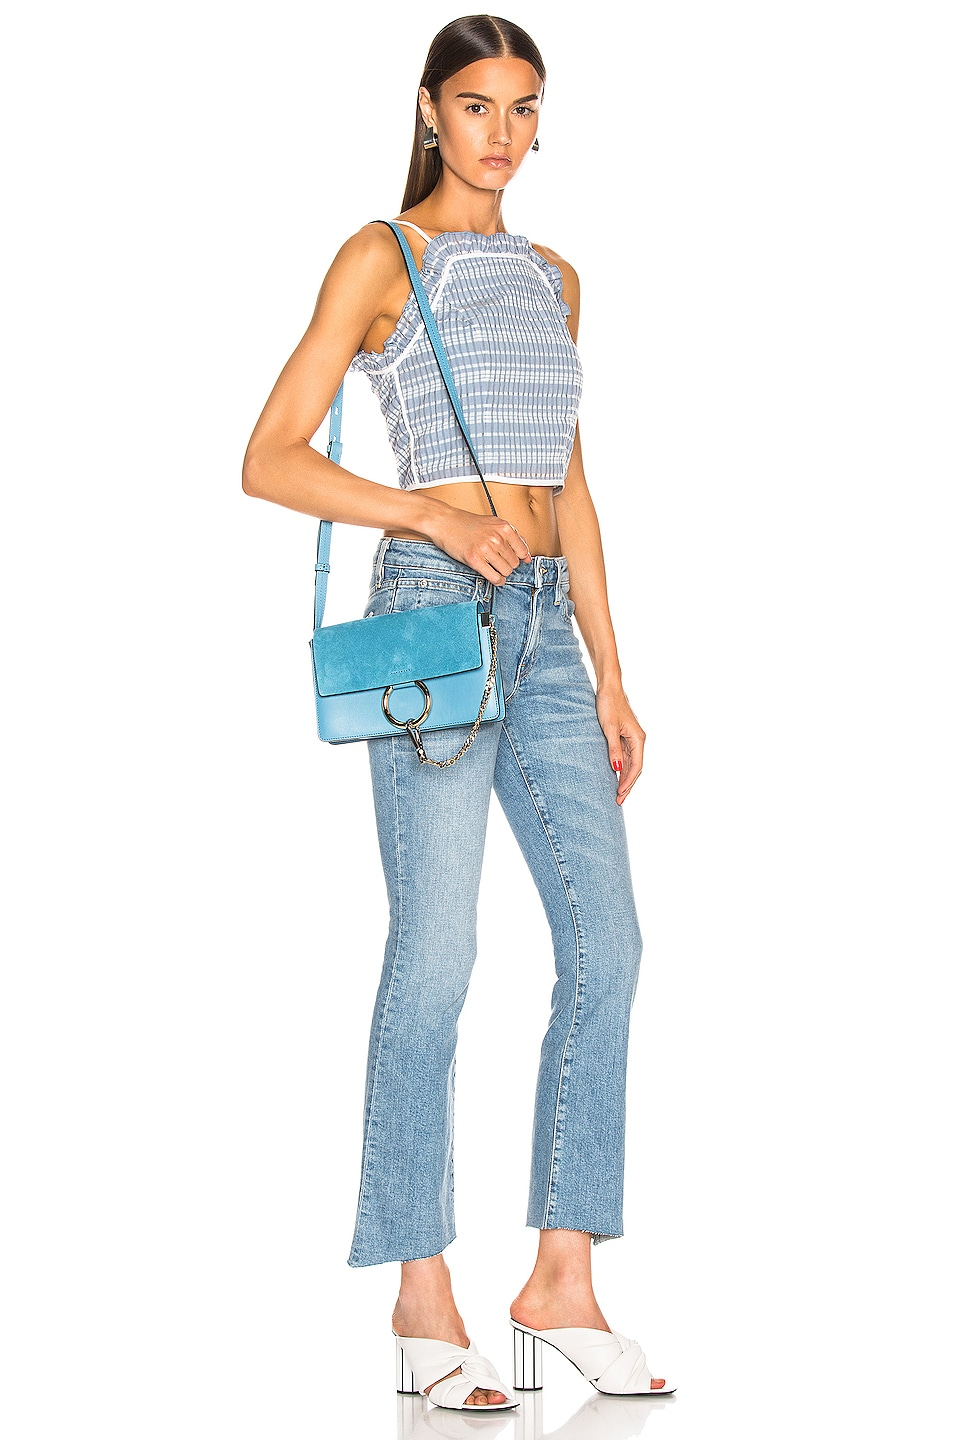 Image 2 of Chloe Small Faye Suede & Calfskin Shoulder Bag in Tomboy Blue